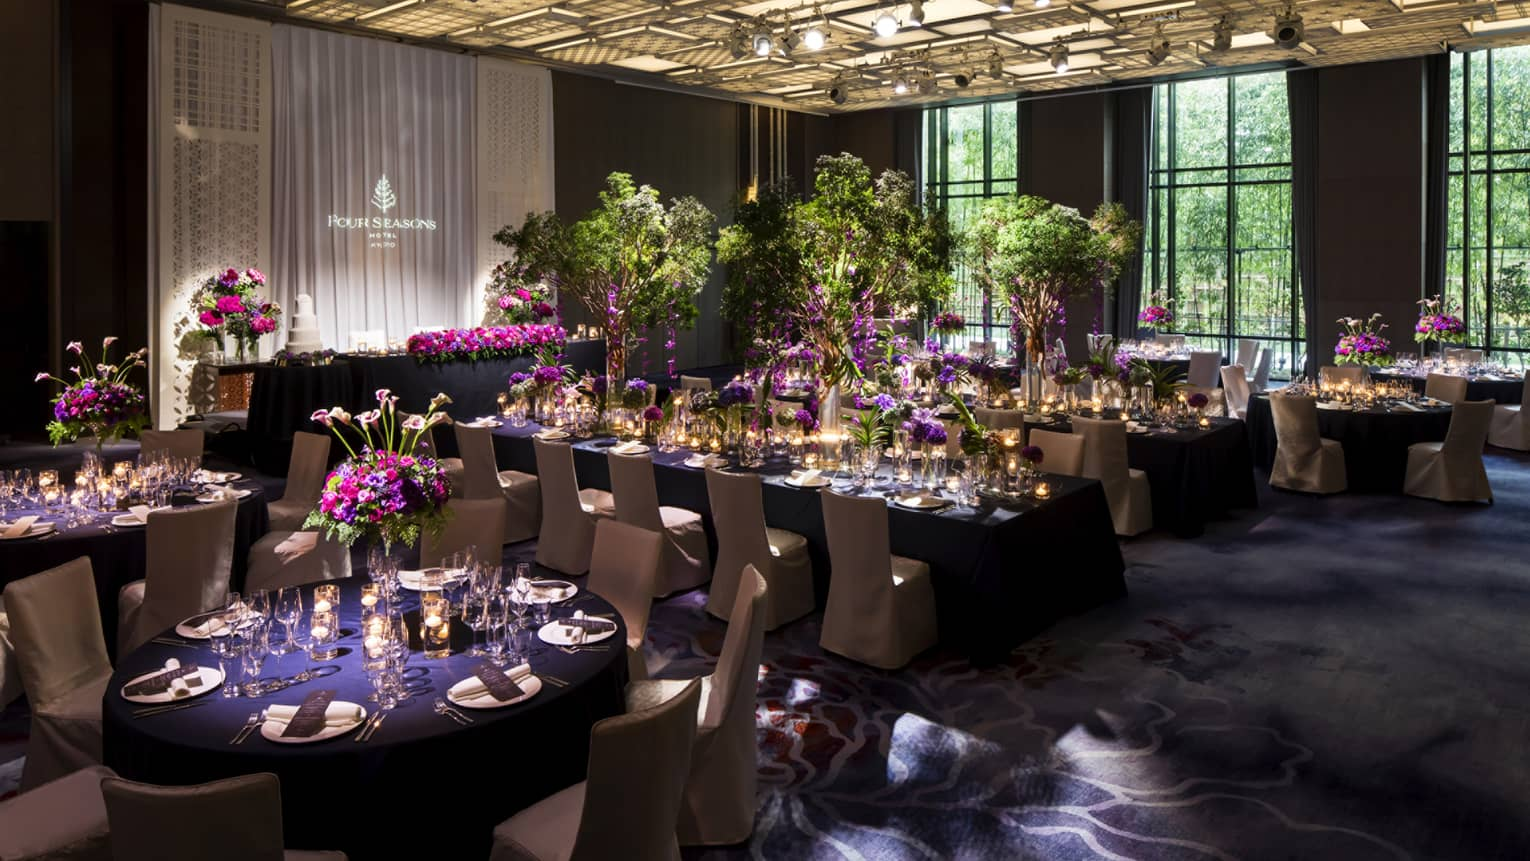 Wedding reception banquet, tables set with purple linens and flowers, under modern ceiling with lights